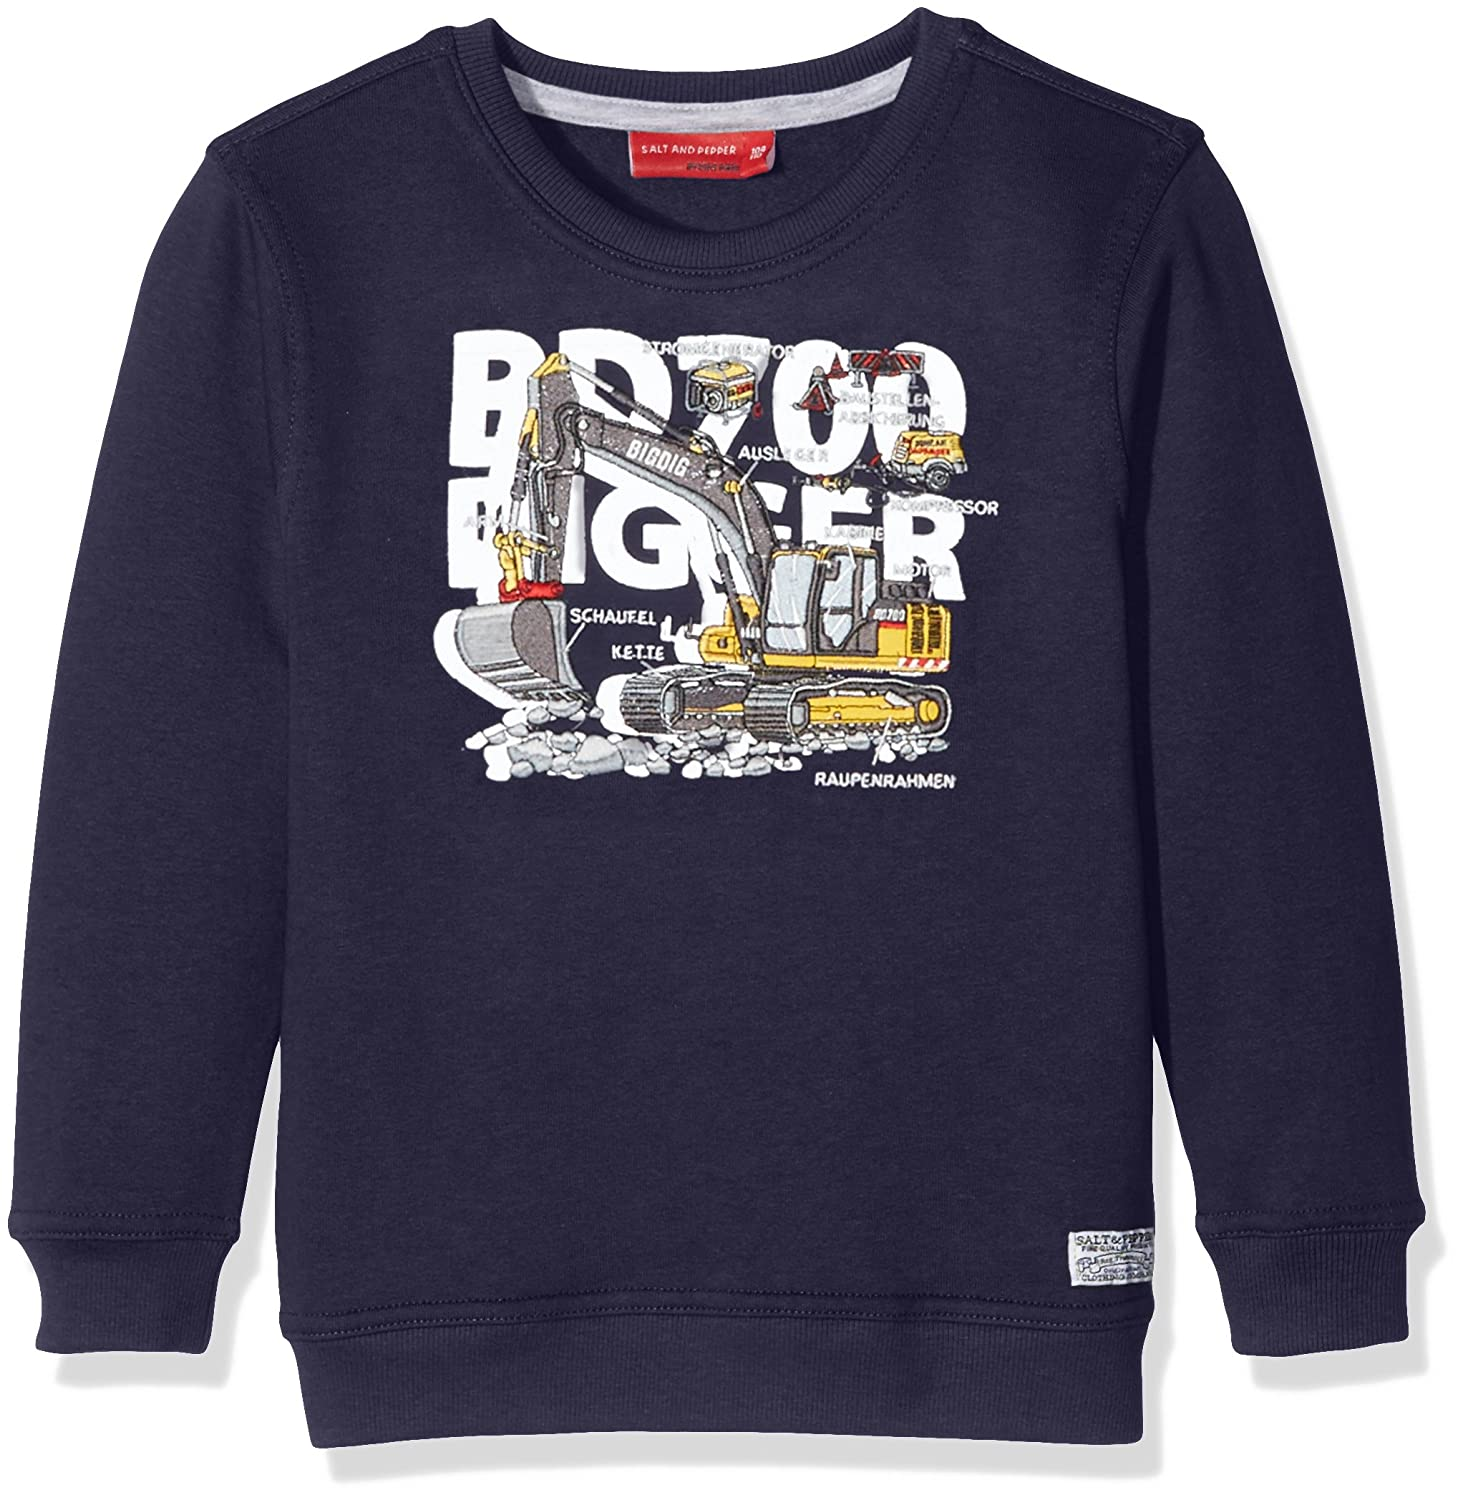 SALT AND PEPPER Jungen Sweat Builder Bagger Sweatshirt